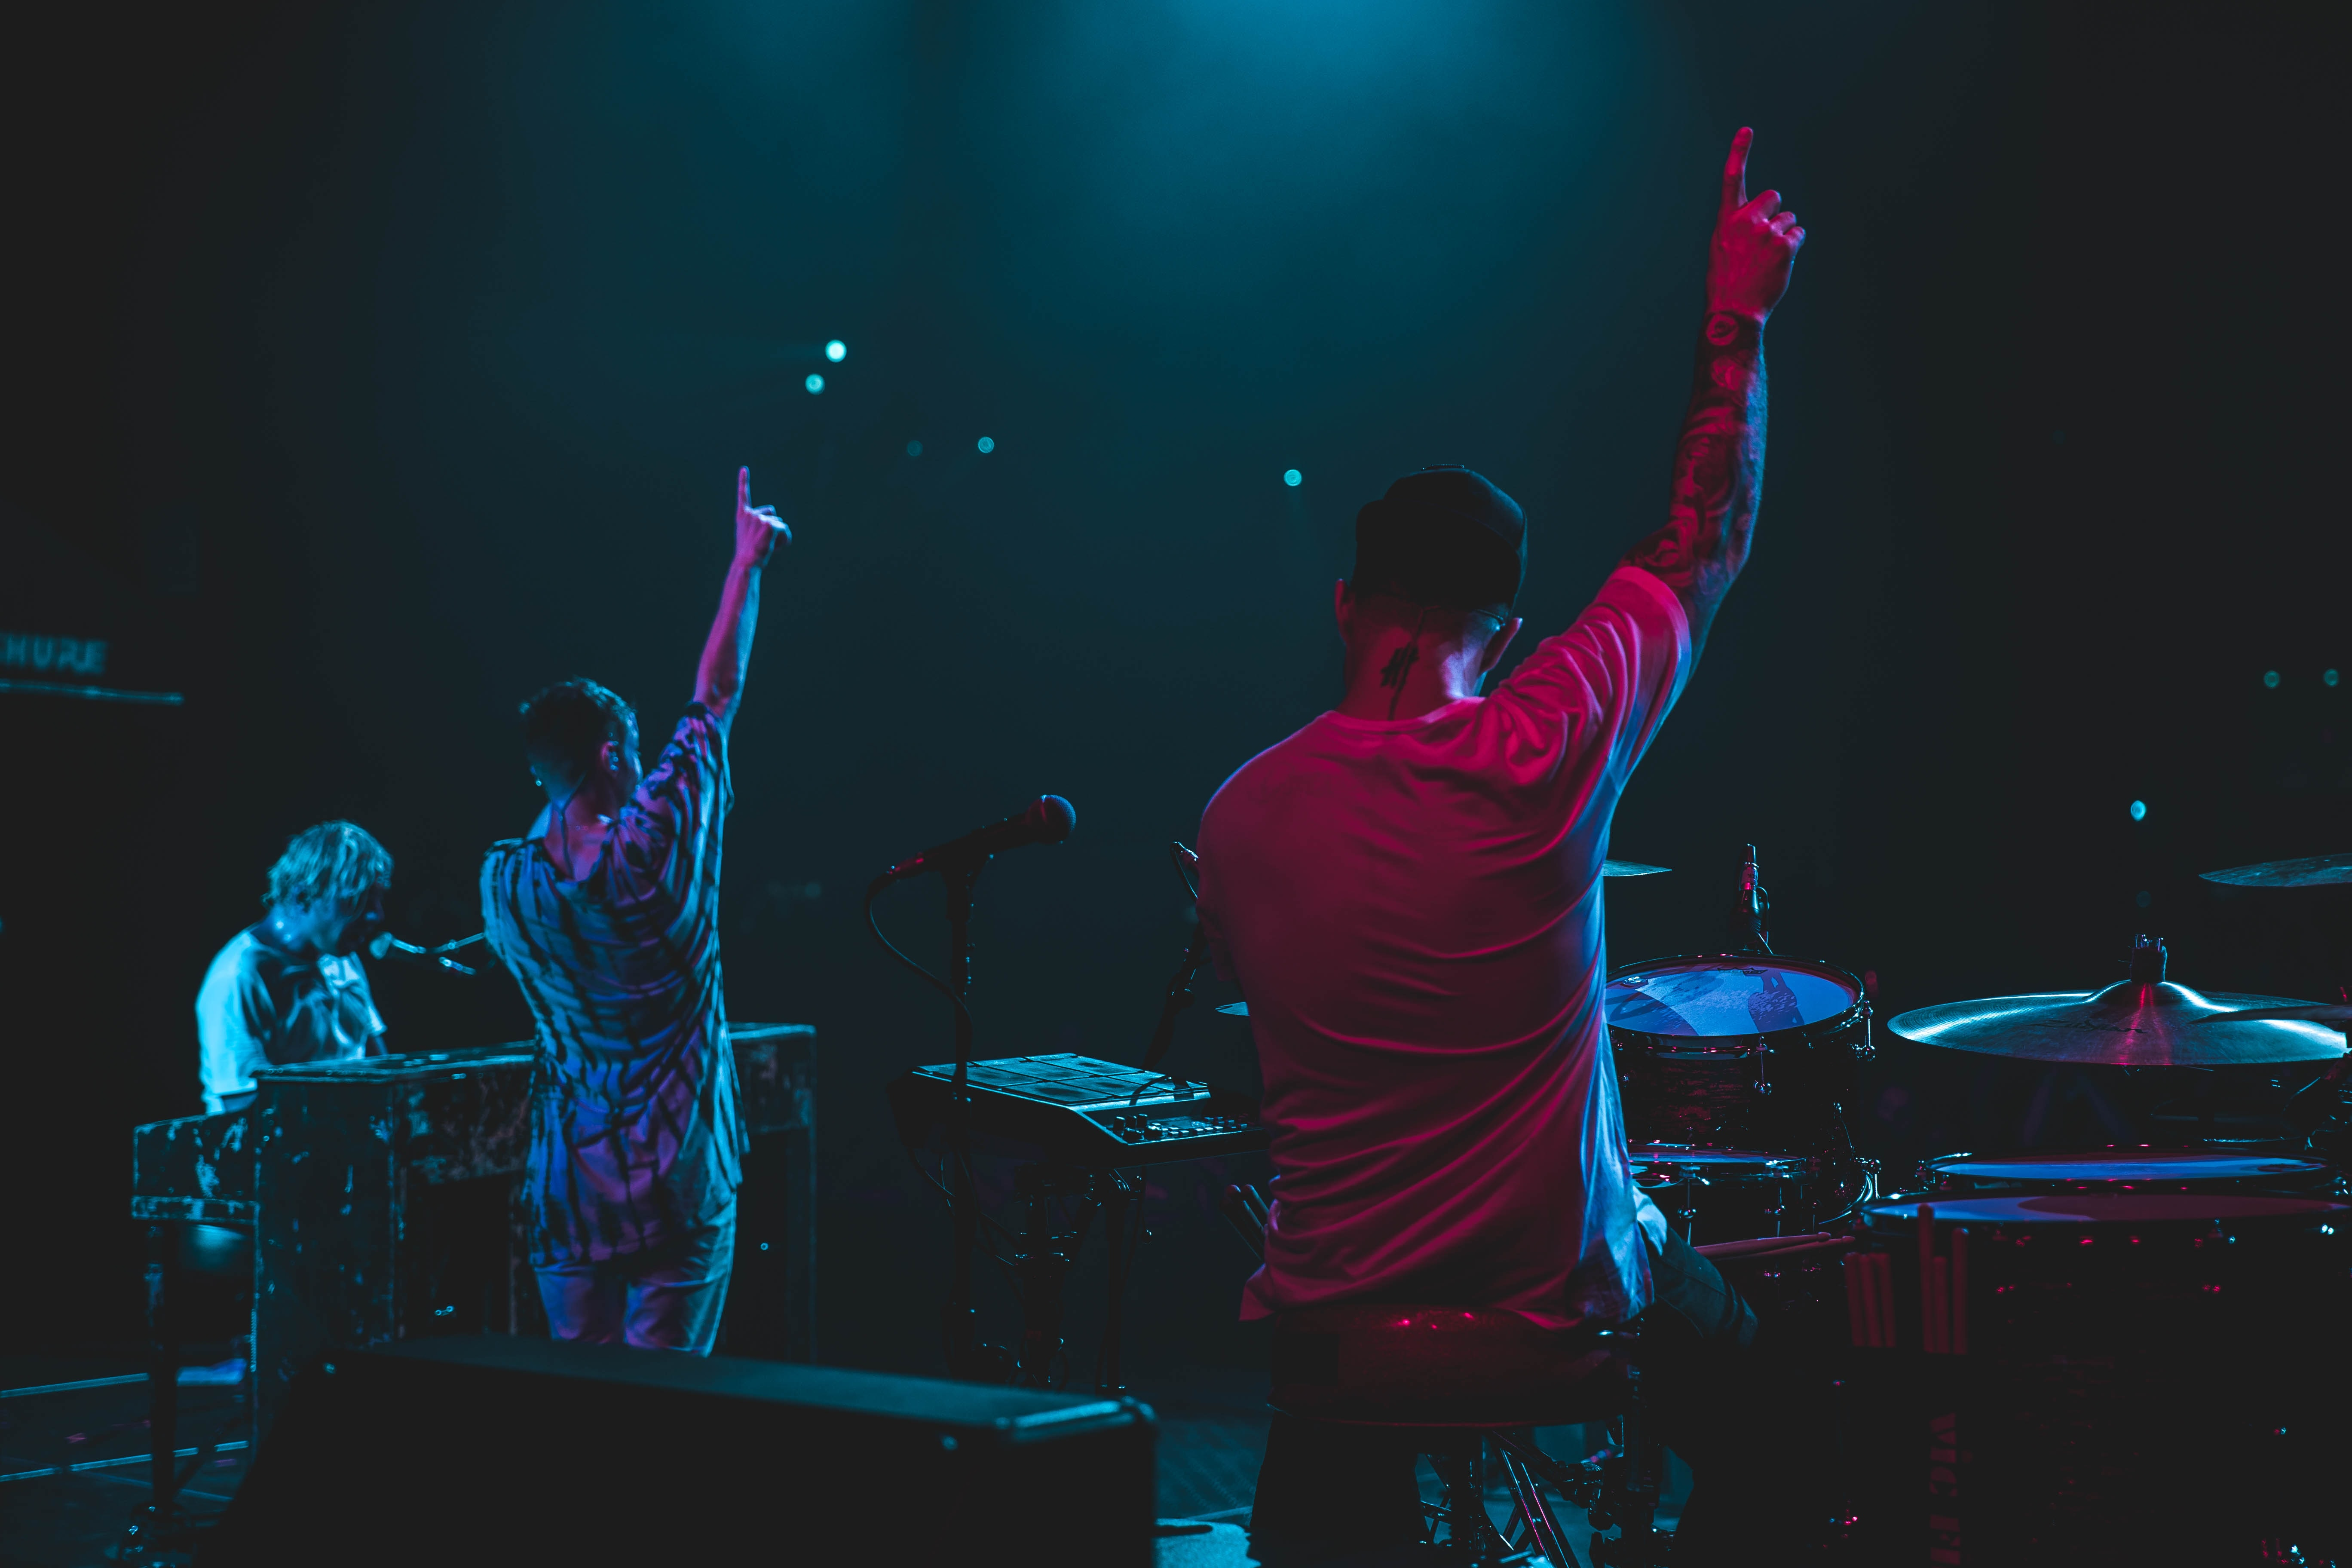 two person raising hands